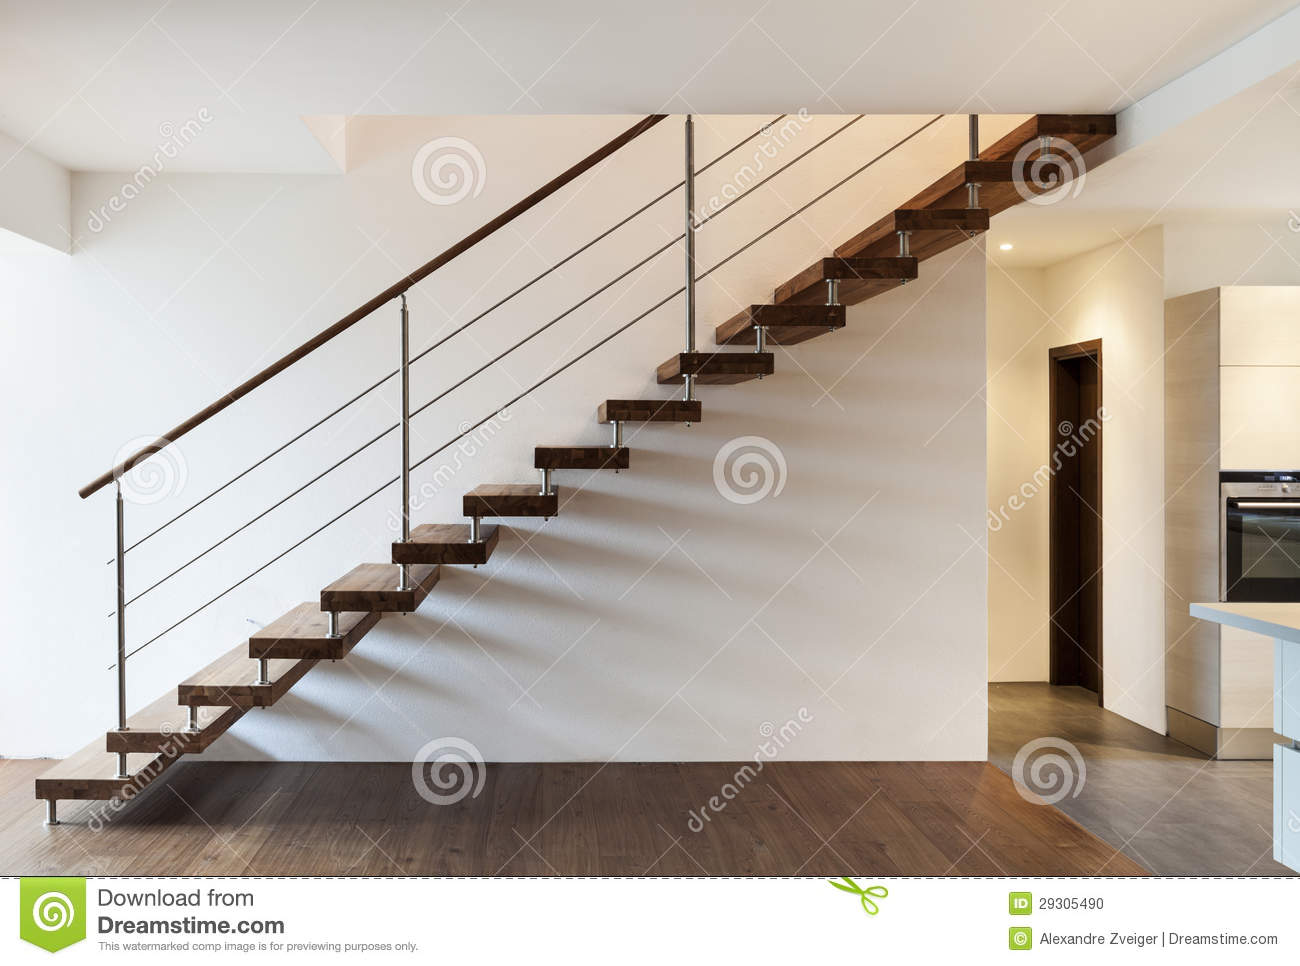 Escalier int rieur photo stock image du vide acier for Escalier moderne interieur